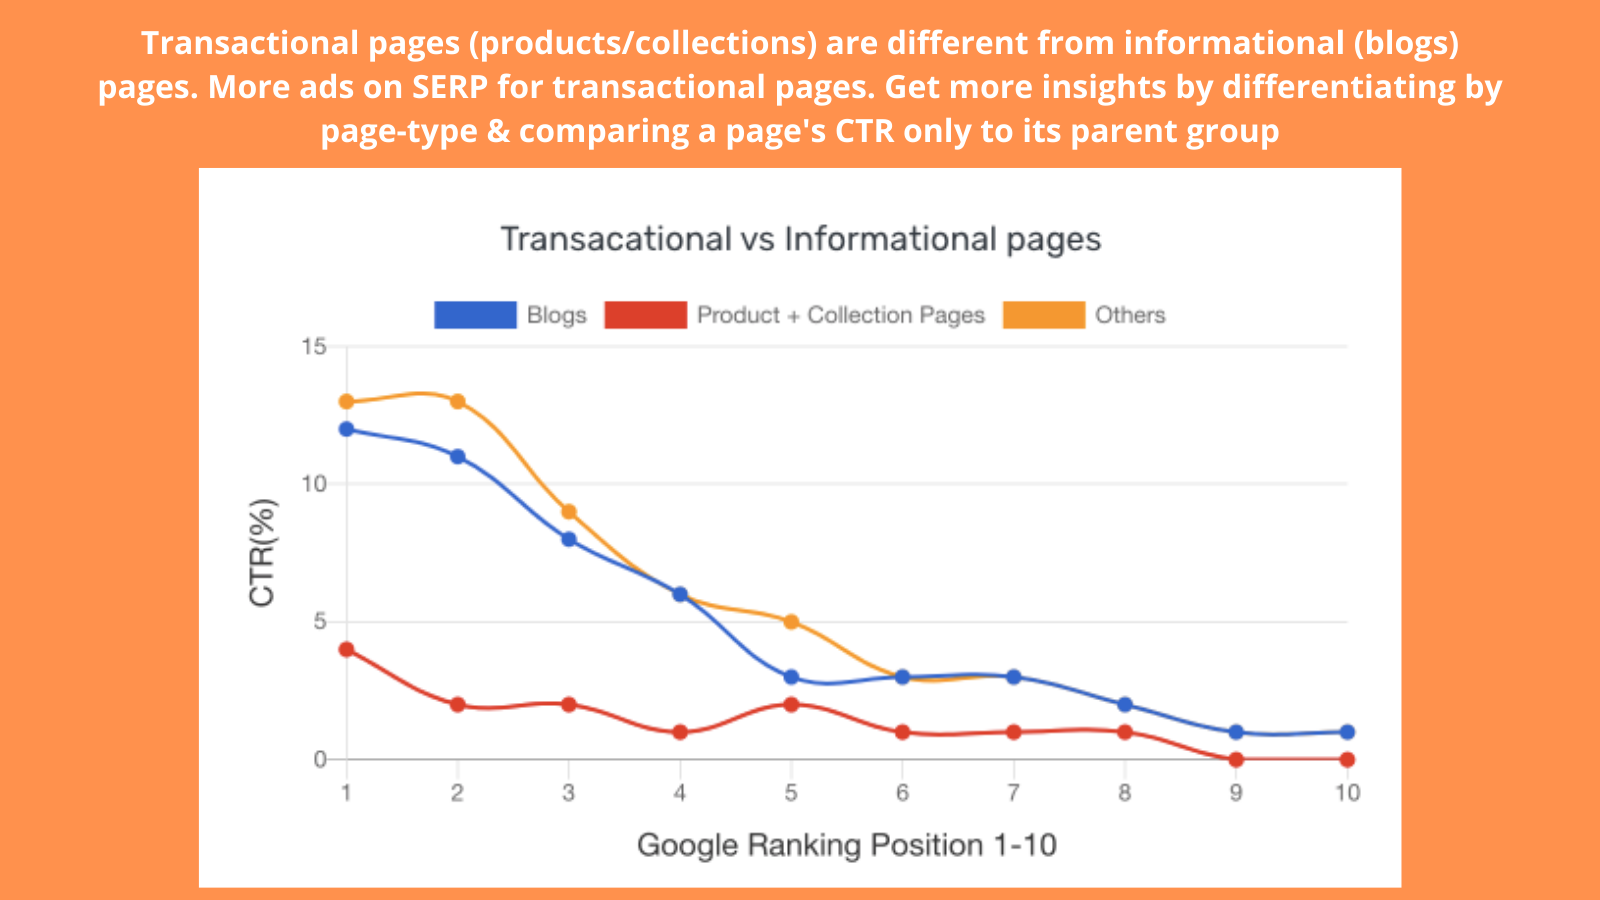 Transactional vs Informational pages